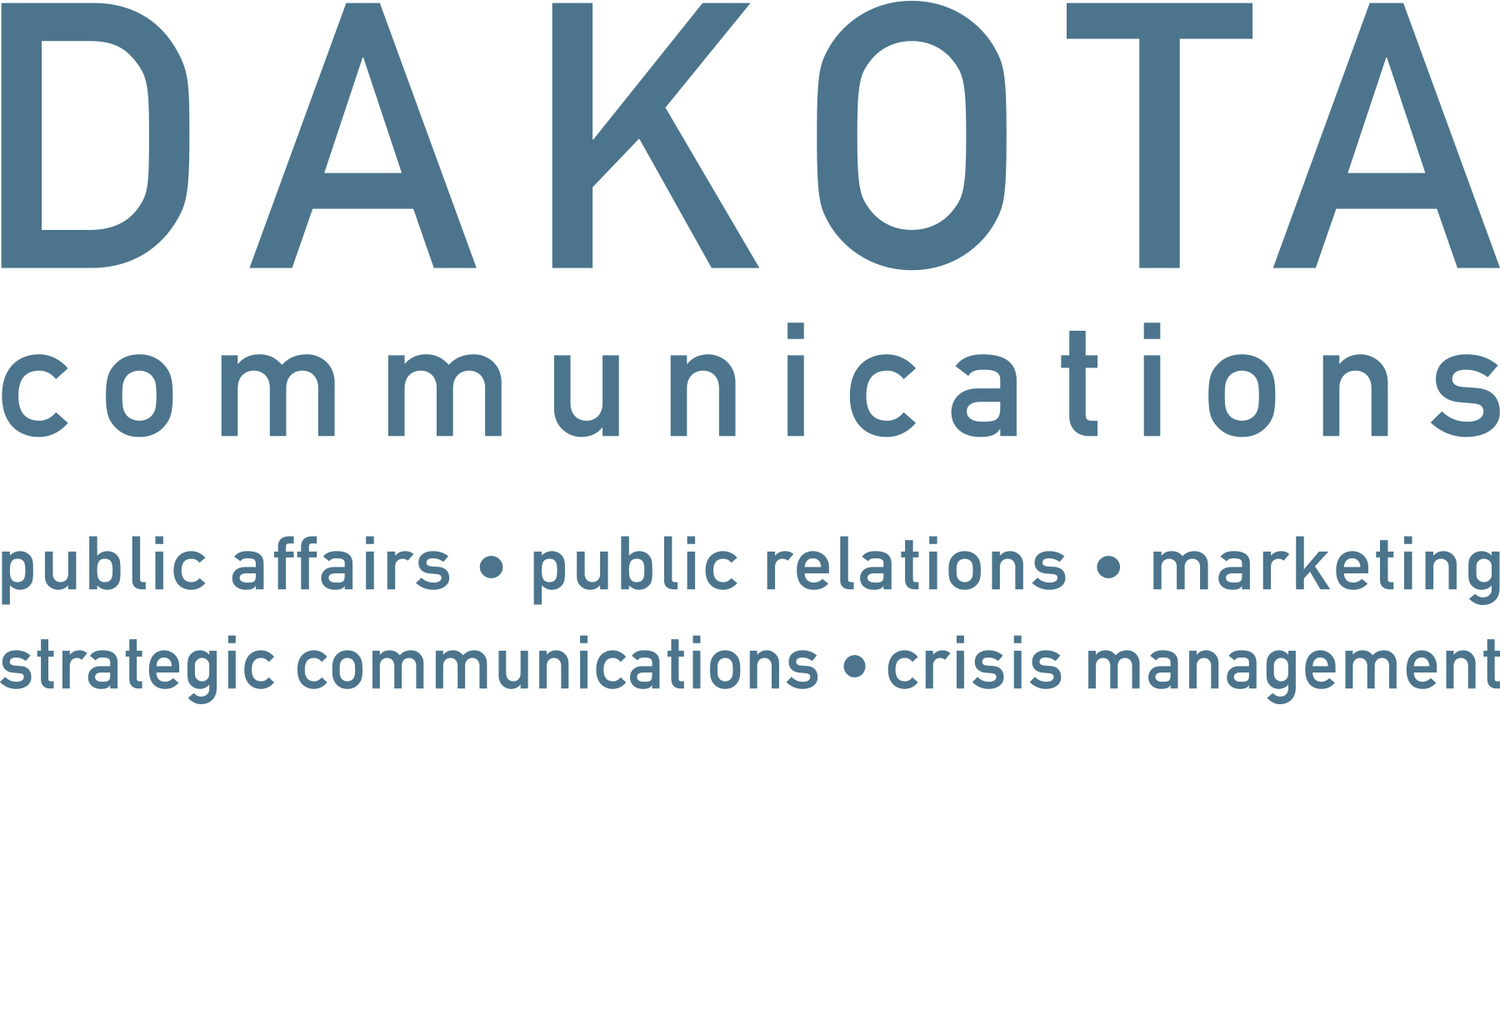 DAKOTA COMMUNICATIONS